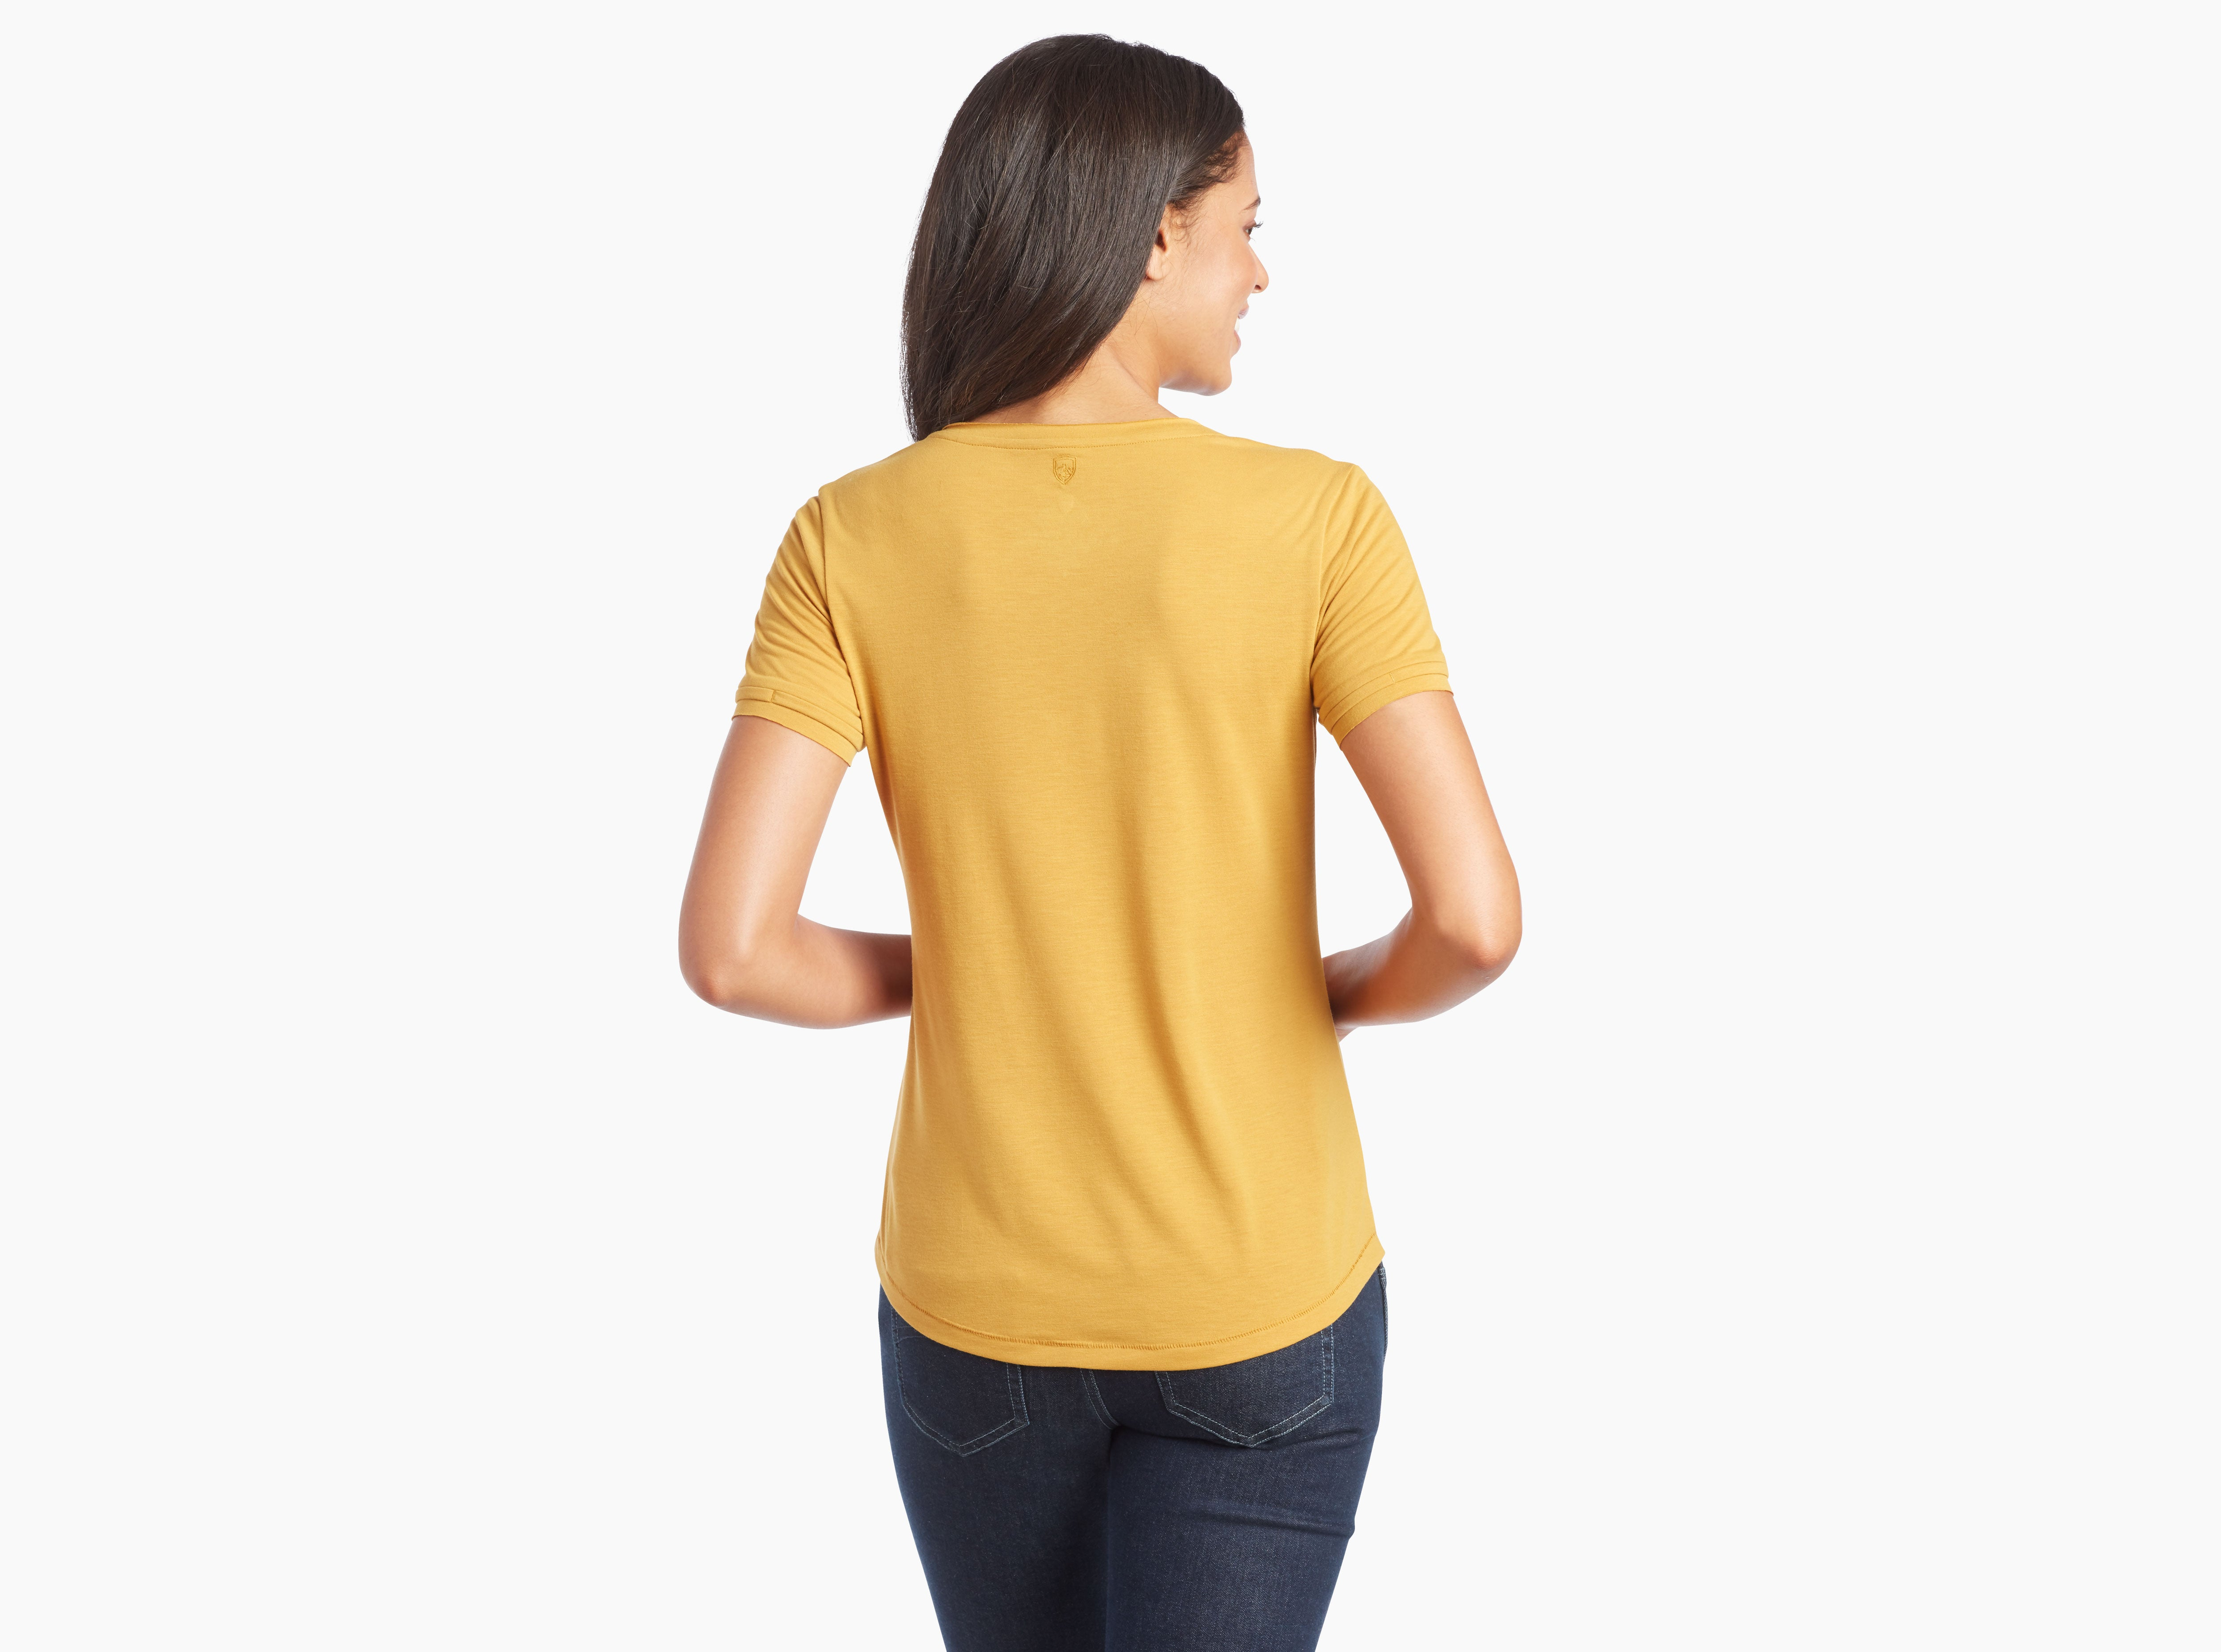 Kuhl Juniper Short Sleeve Tee for Ladies in Golden